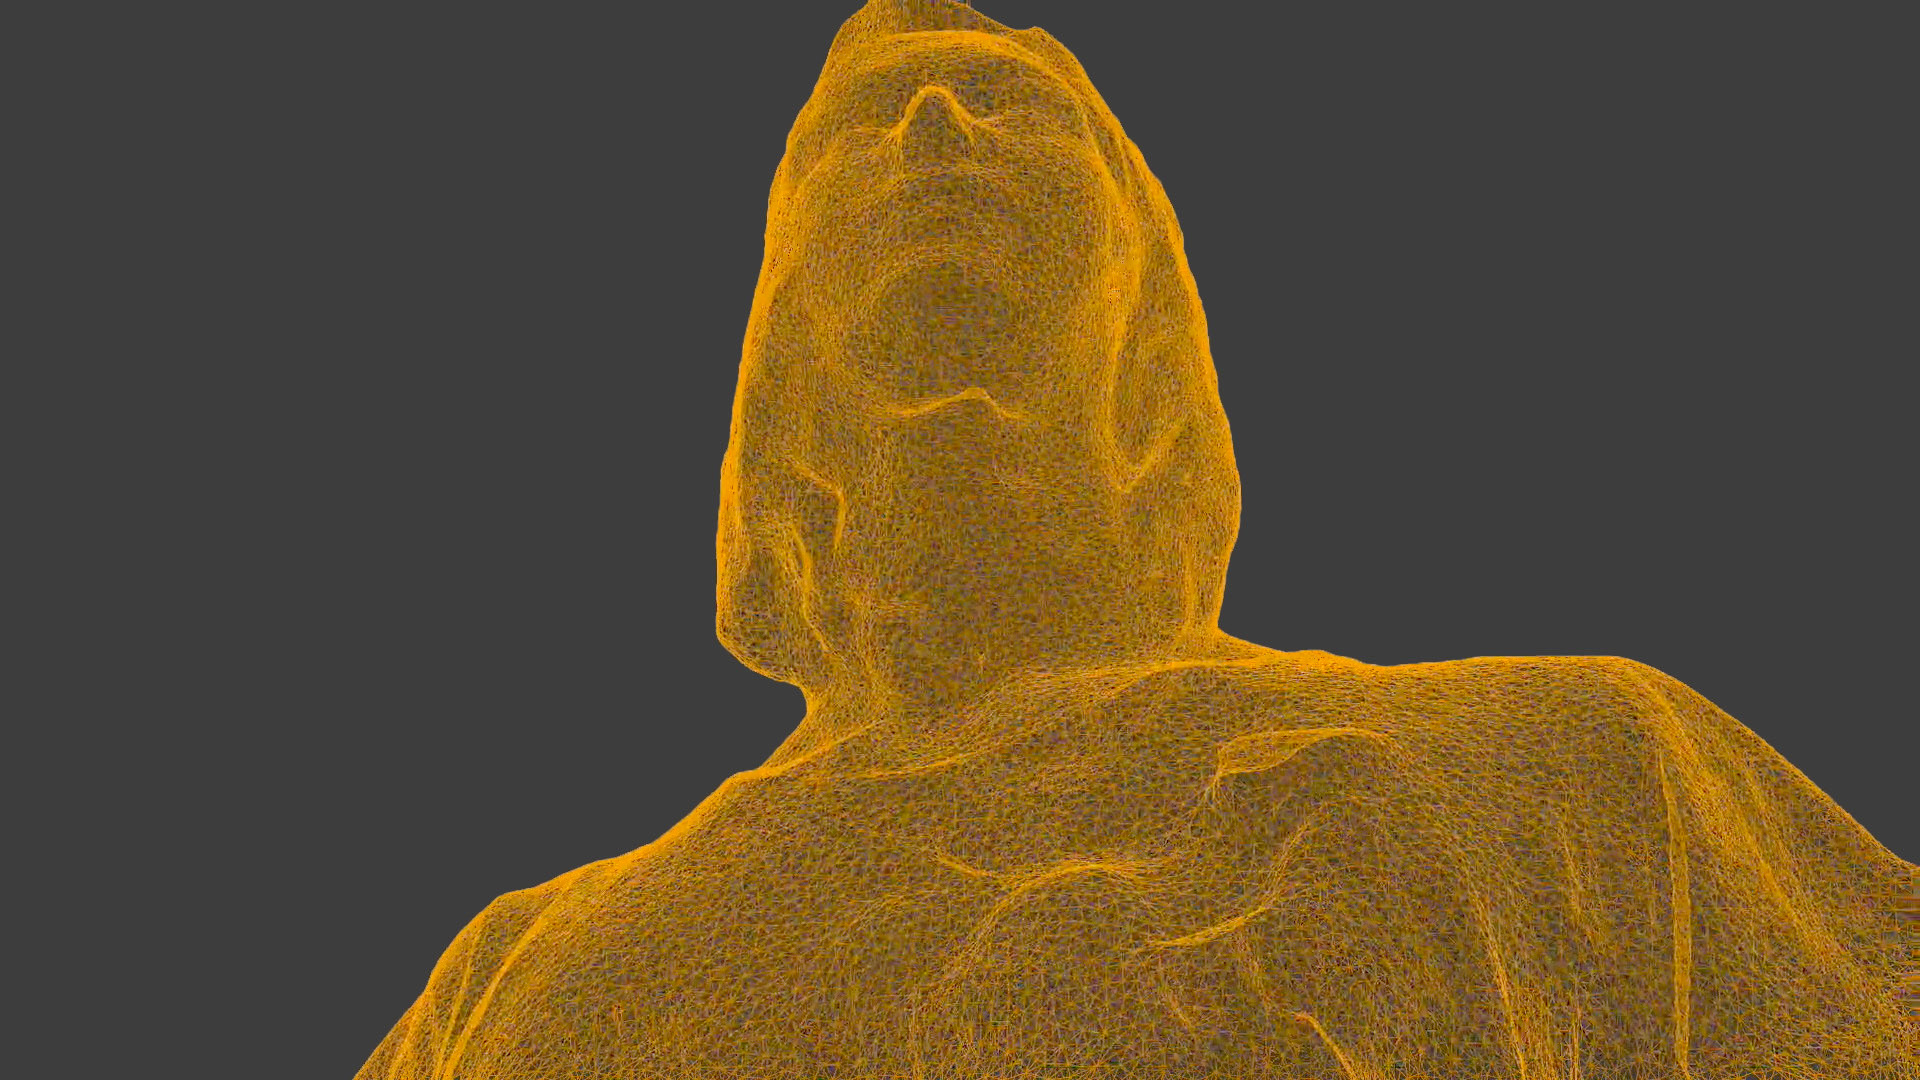 Head shot from below of point cloud